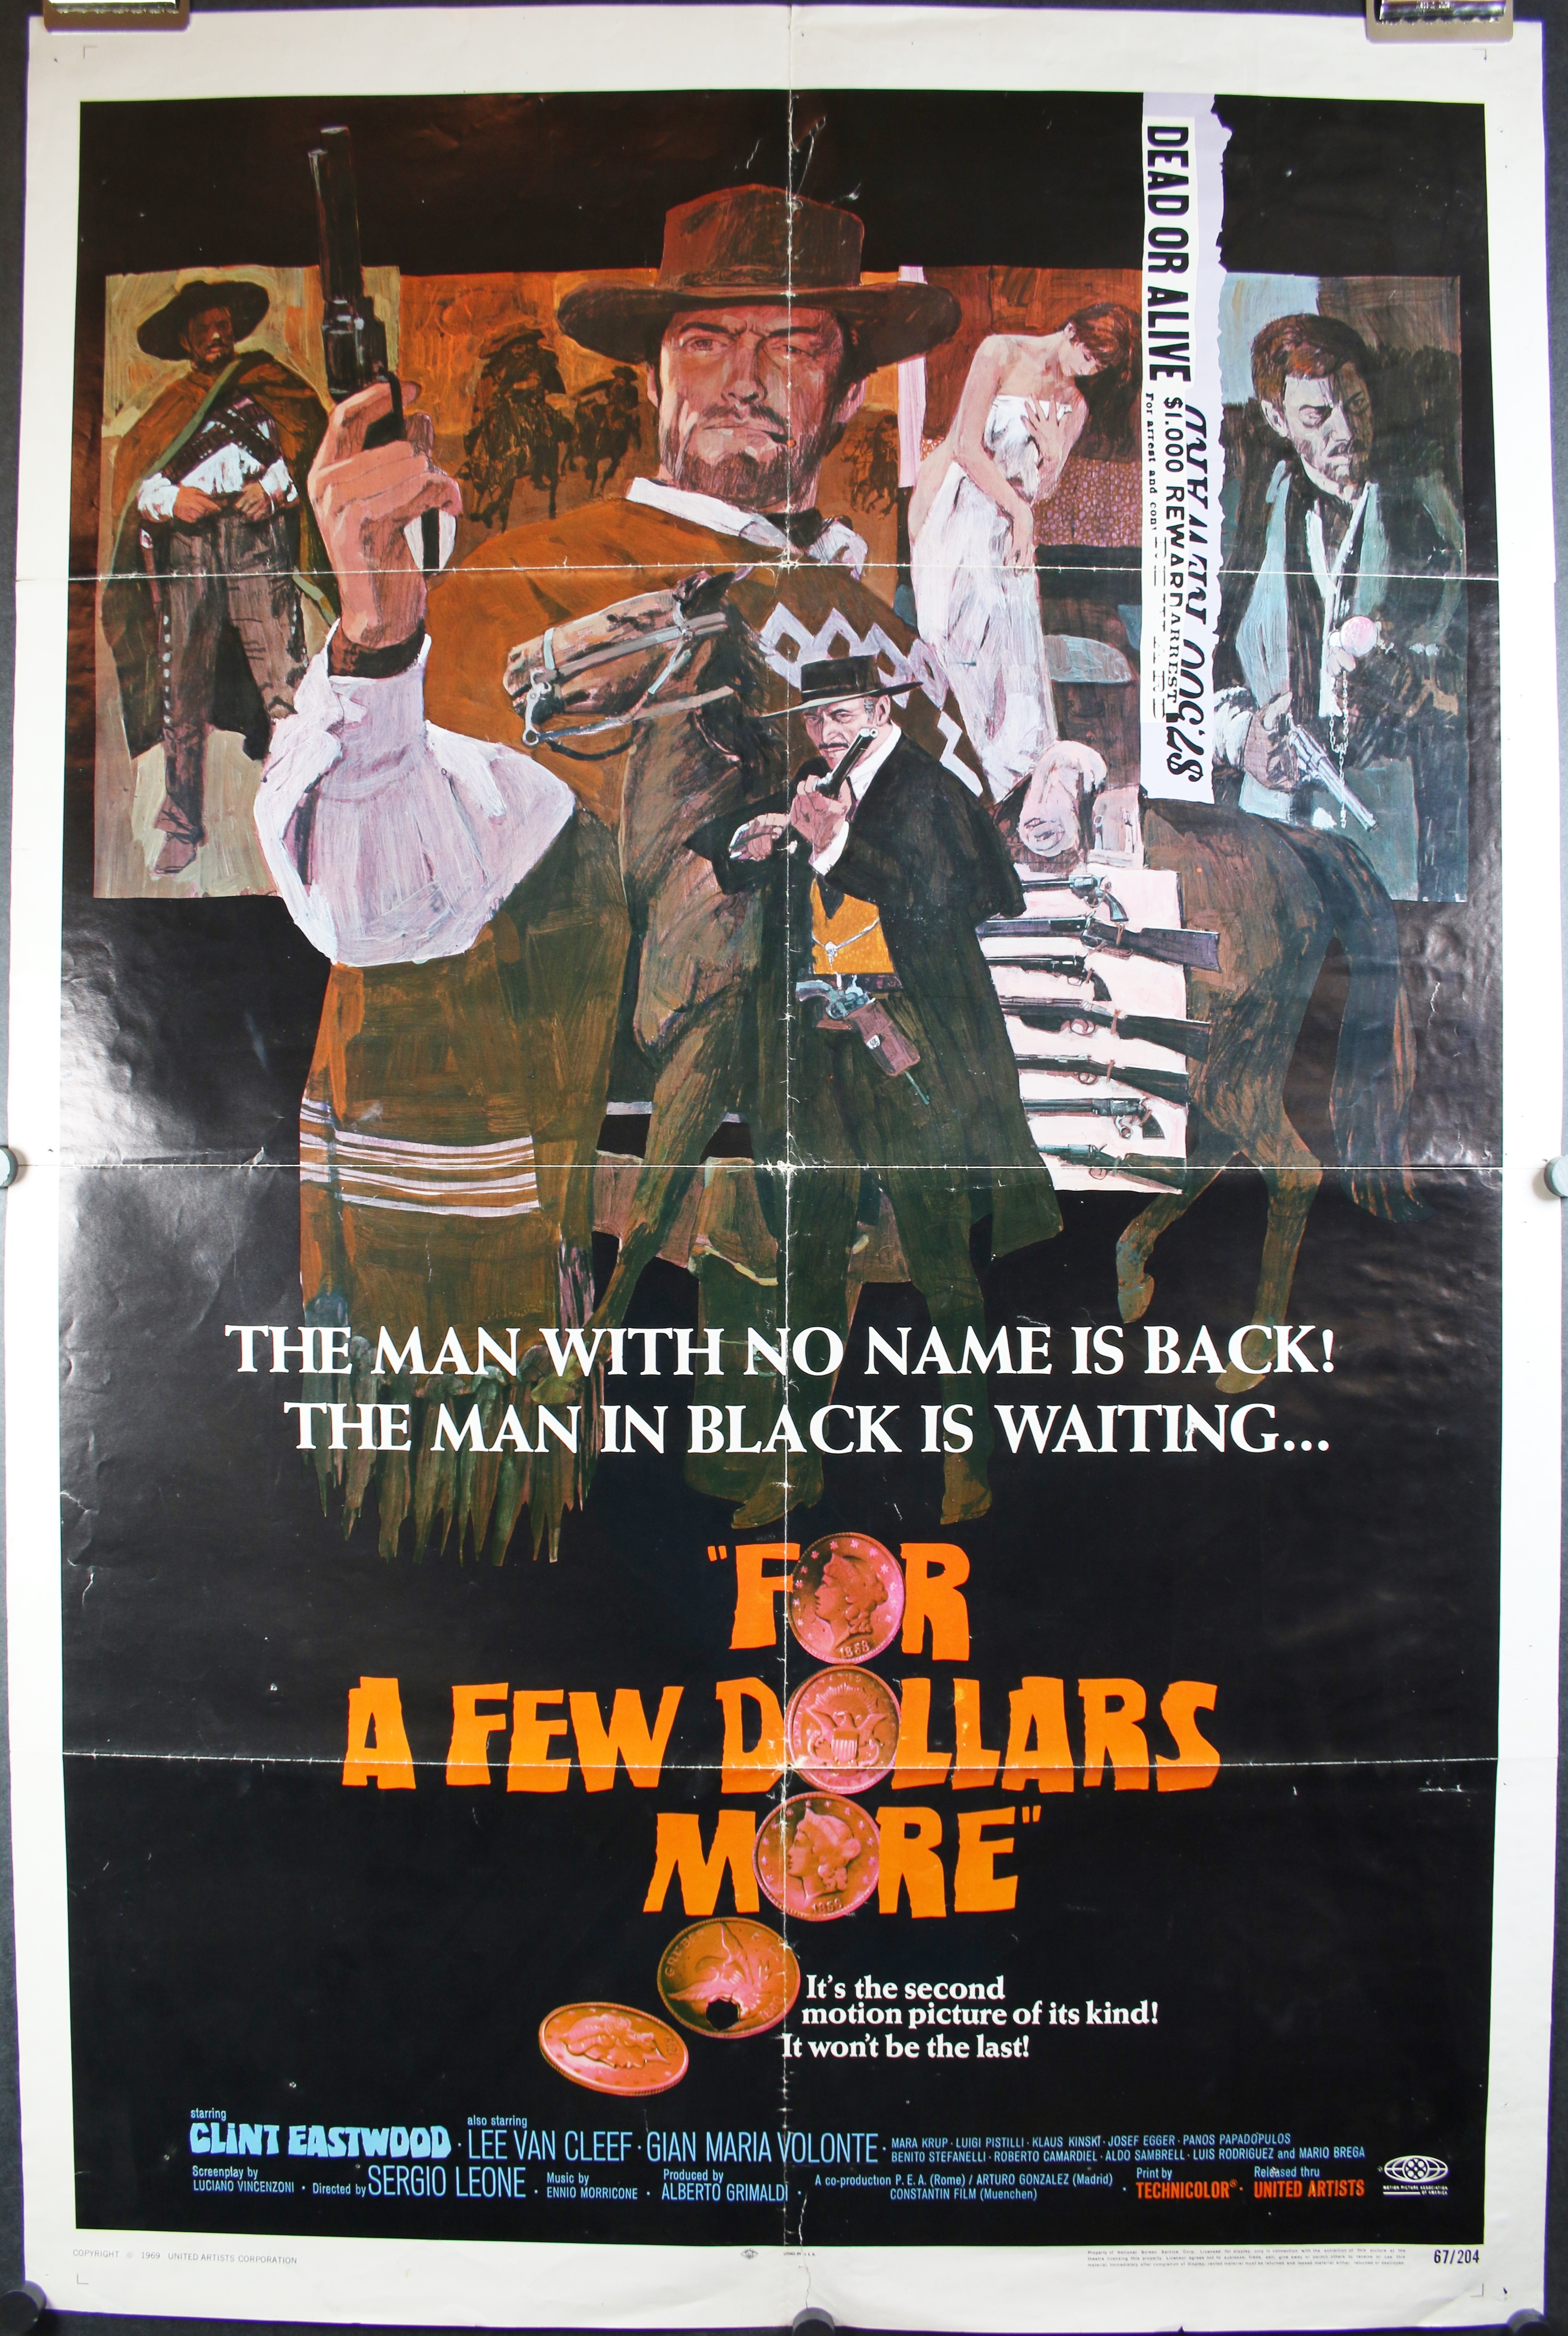 For a few dollars more item 1 movie poster print